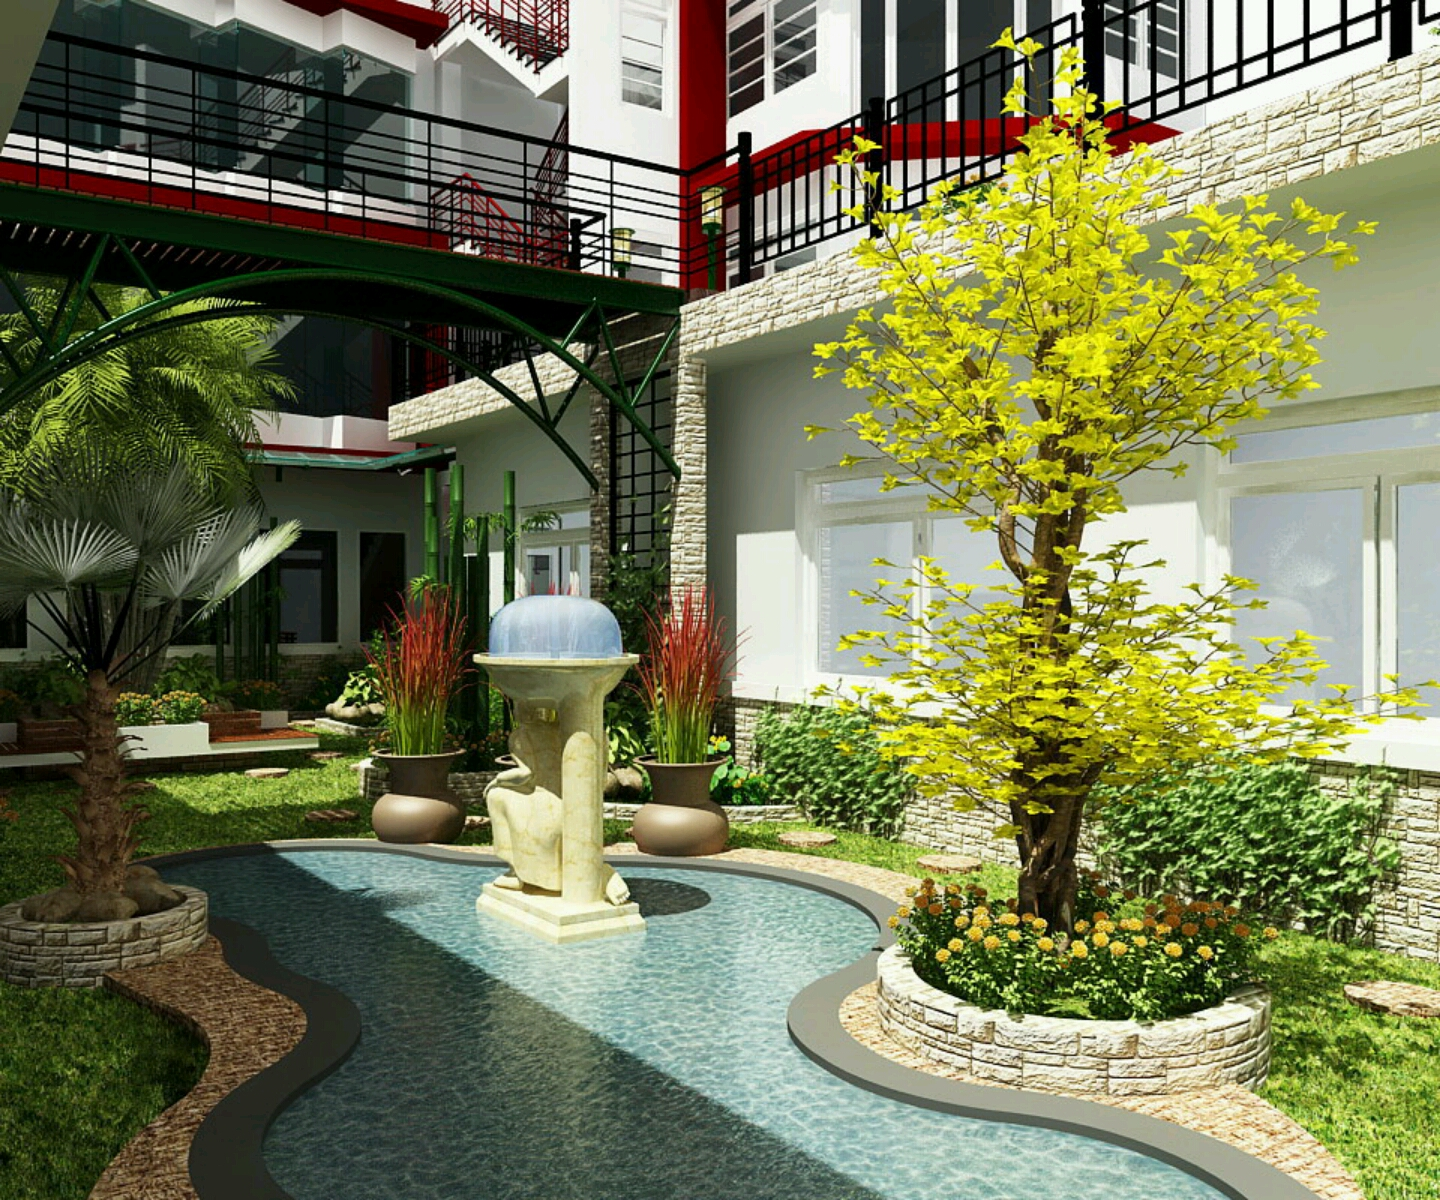 Home decor 2012 modern luxury homes beautiful garden for Beautiful garden ideas